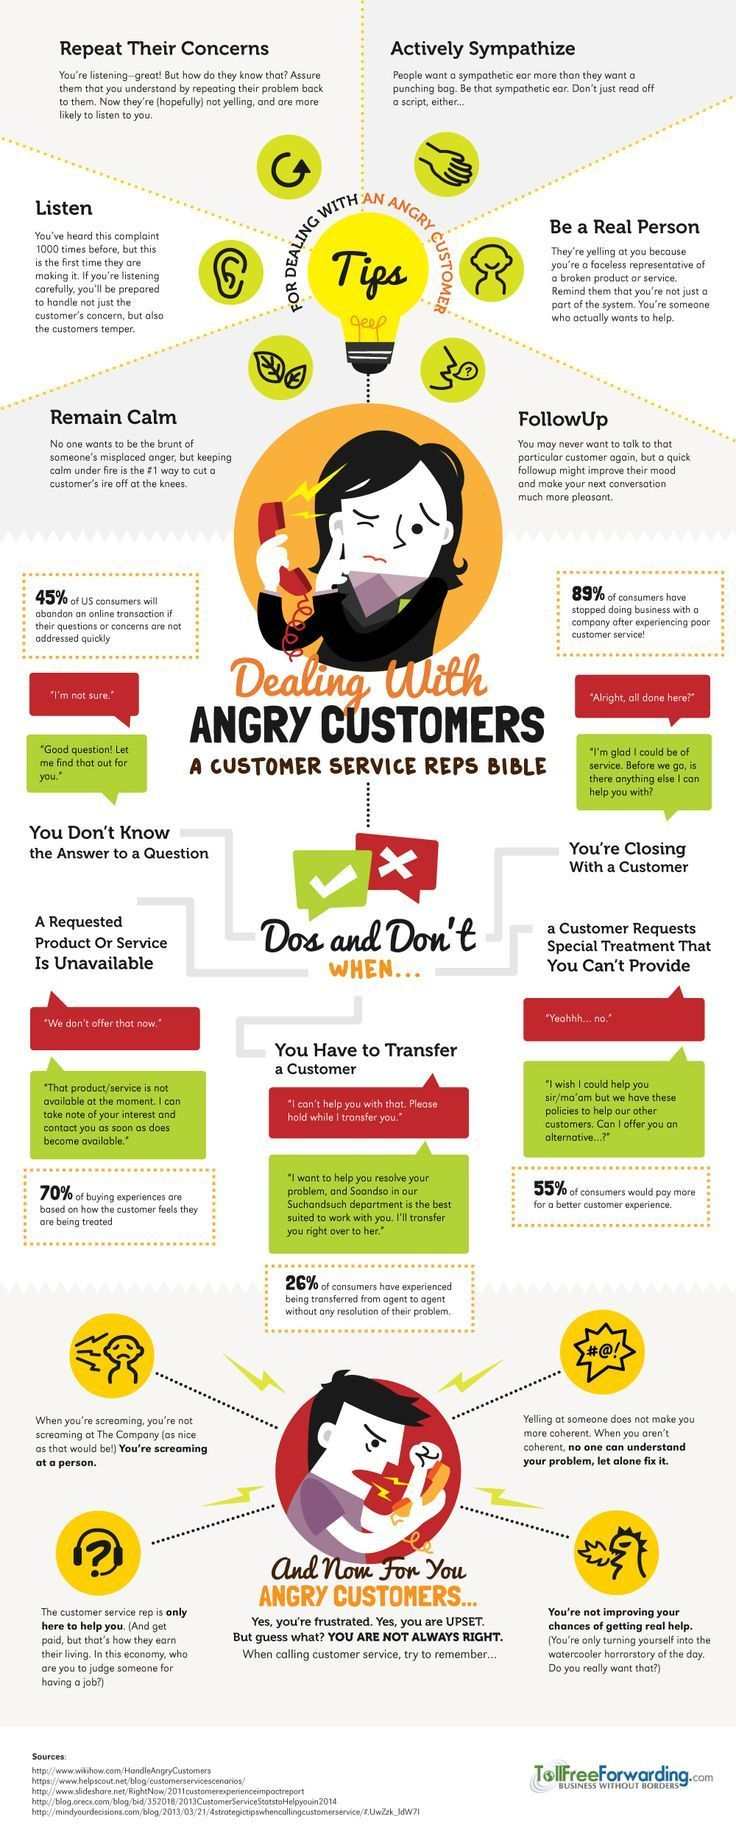 Listening v Hearing How to Diffuse Angry Customers